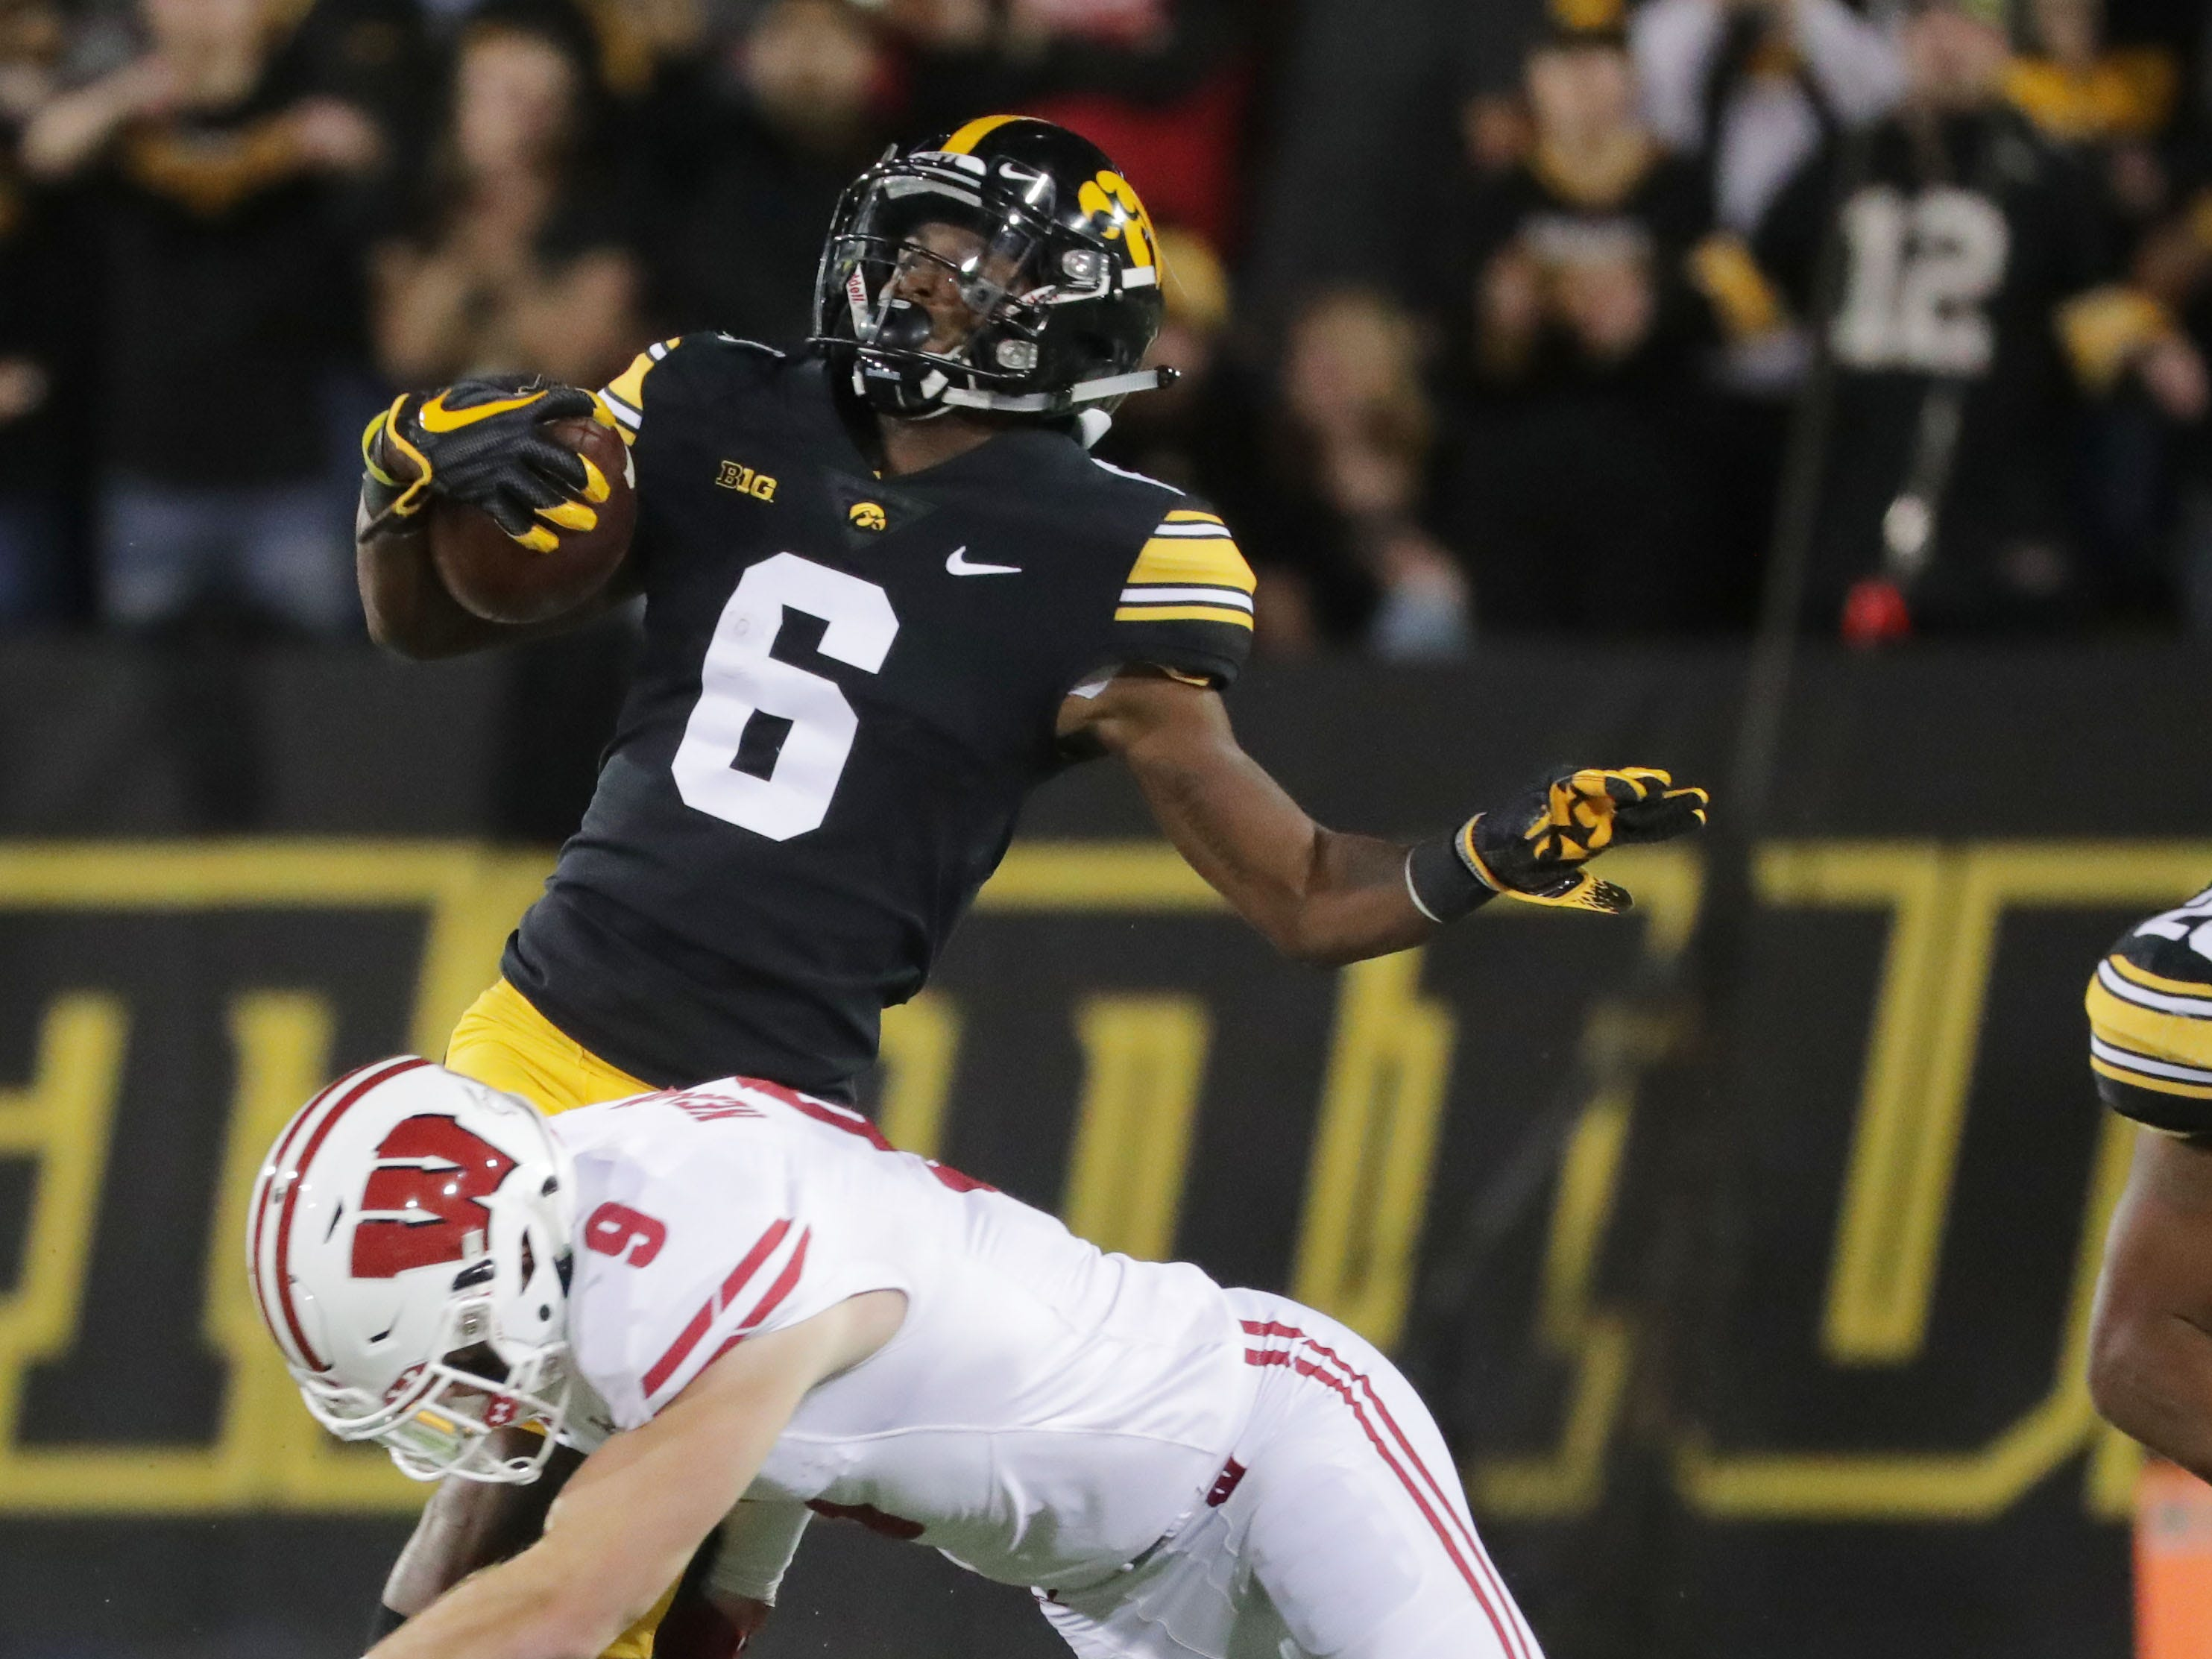 Wisconsin safety Scott Nelson misses a tackle on Iowa wide receiver Ihmir Smith-Marsette.